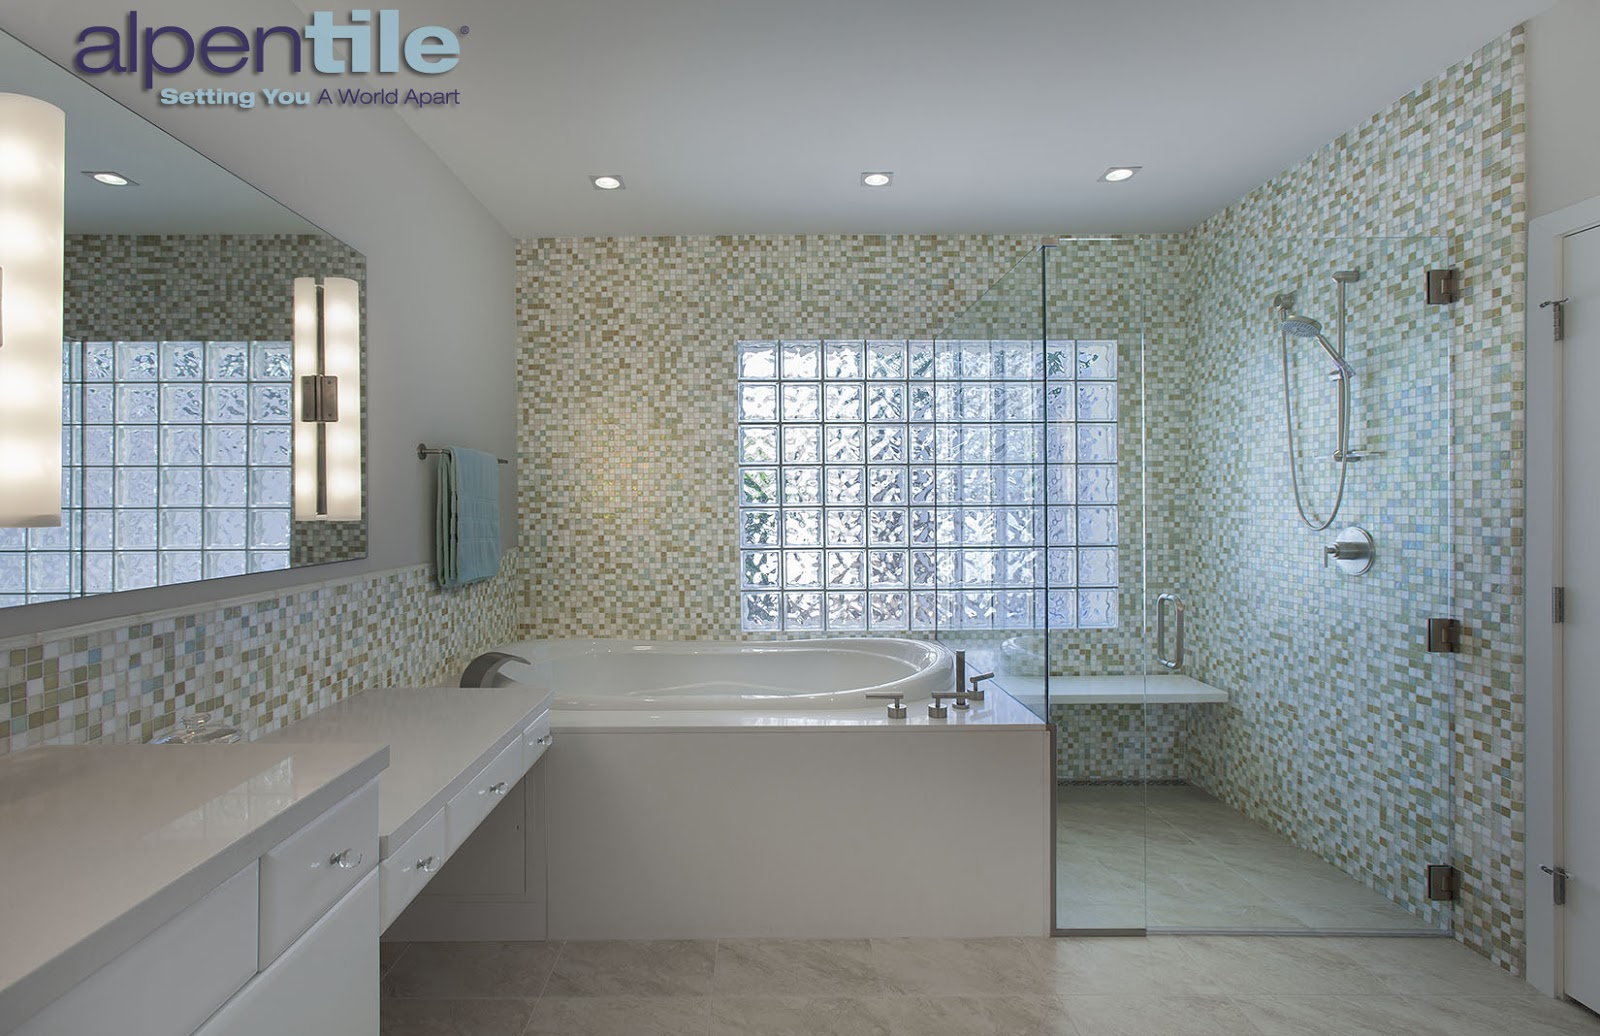 Alpentile Glass Tile Swimming Pools: Contemporary bright bathroom ...